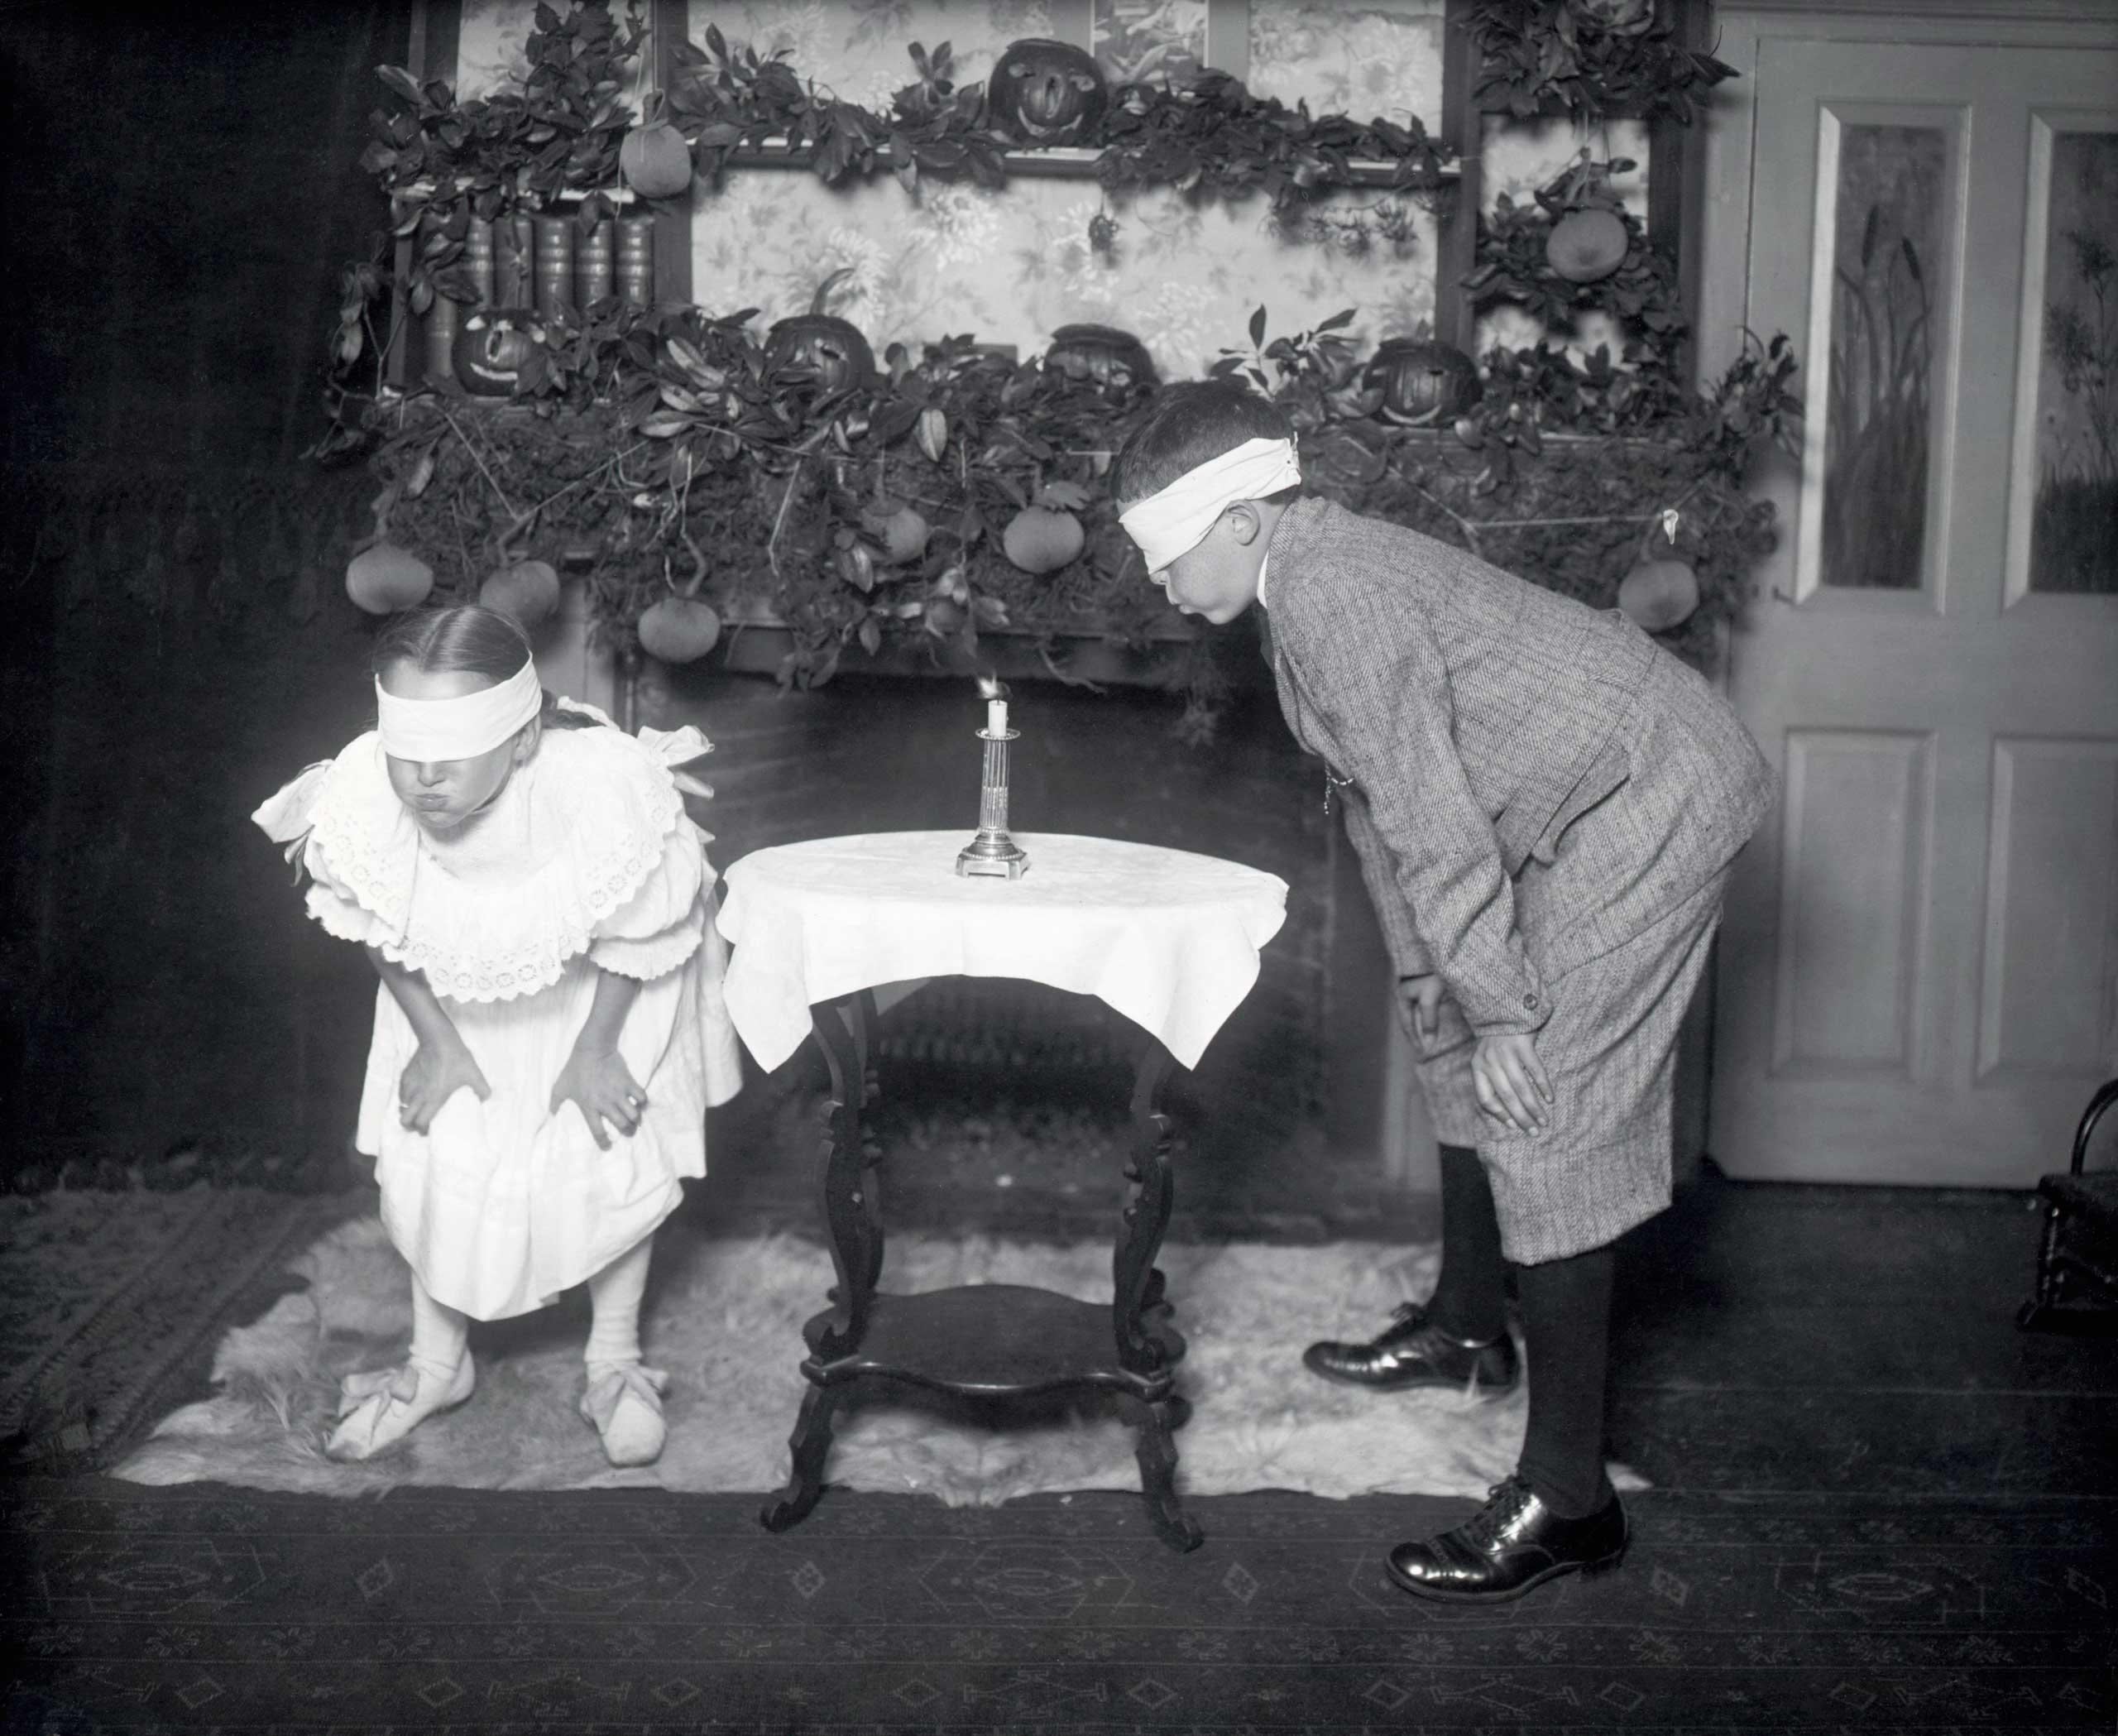 Blindfolded children search for a candle to try to blow it out in an old Halloween tradition circa 1900s.